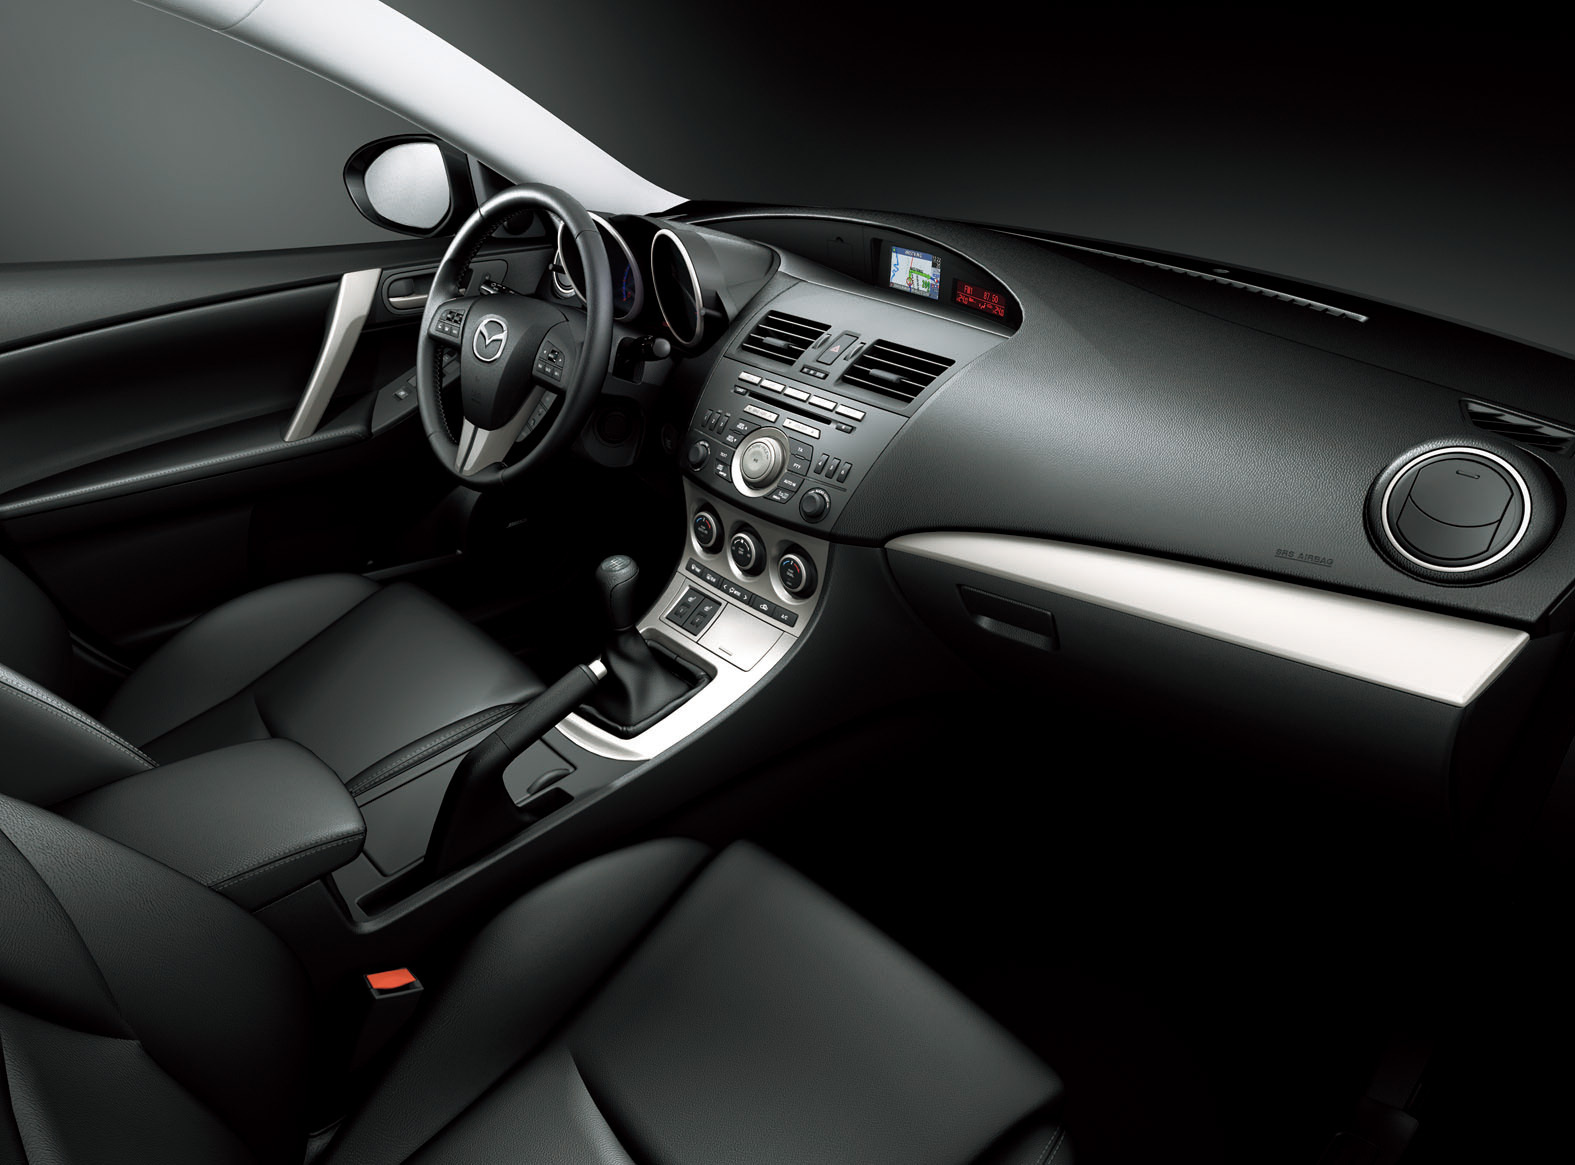 Mazda Images New 3 HD Wallpaper And Background Photos